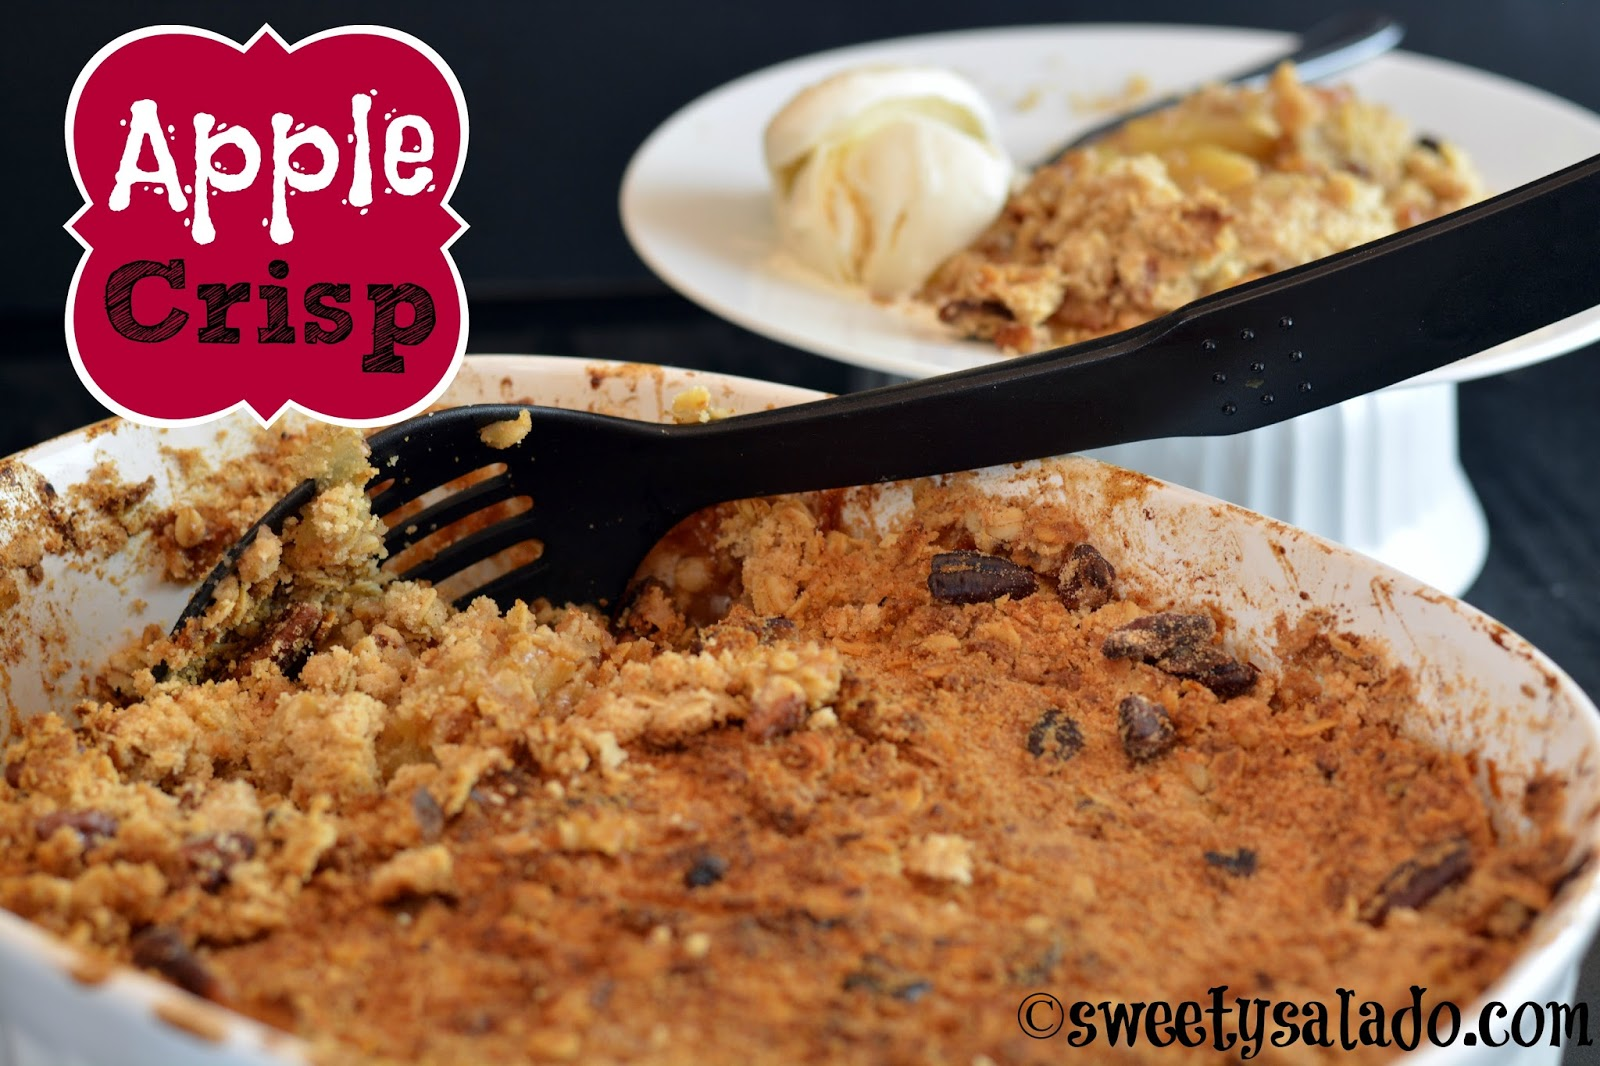 Sweet y salado apple crisp this apple crisp or apple crumble as some people like to call it is exactly one of those desserts that remind you of fall as soon as you pop it in the forumfinder Images